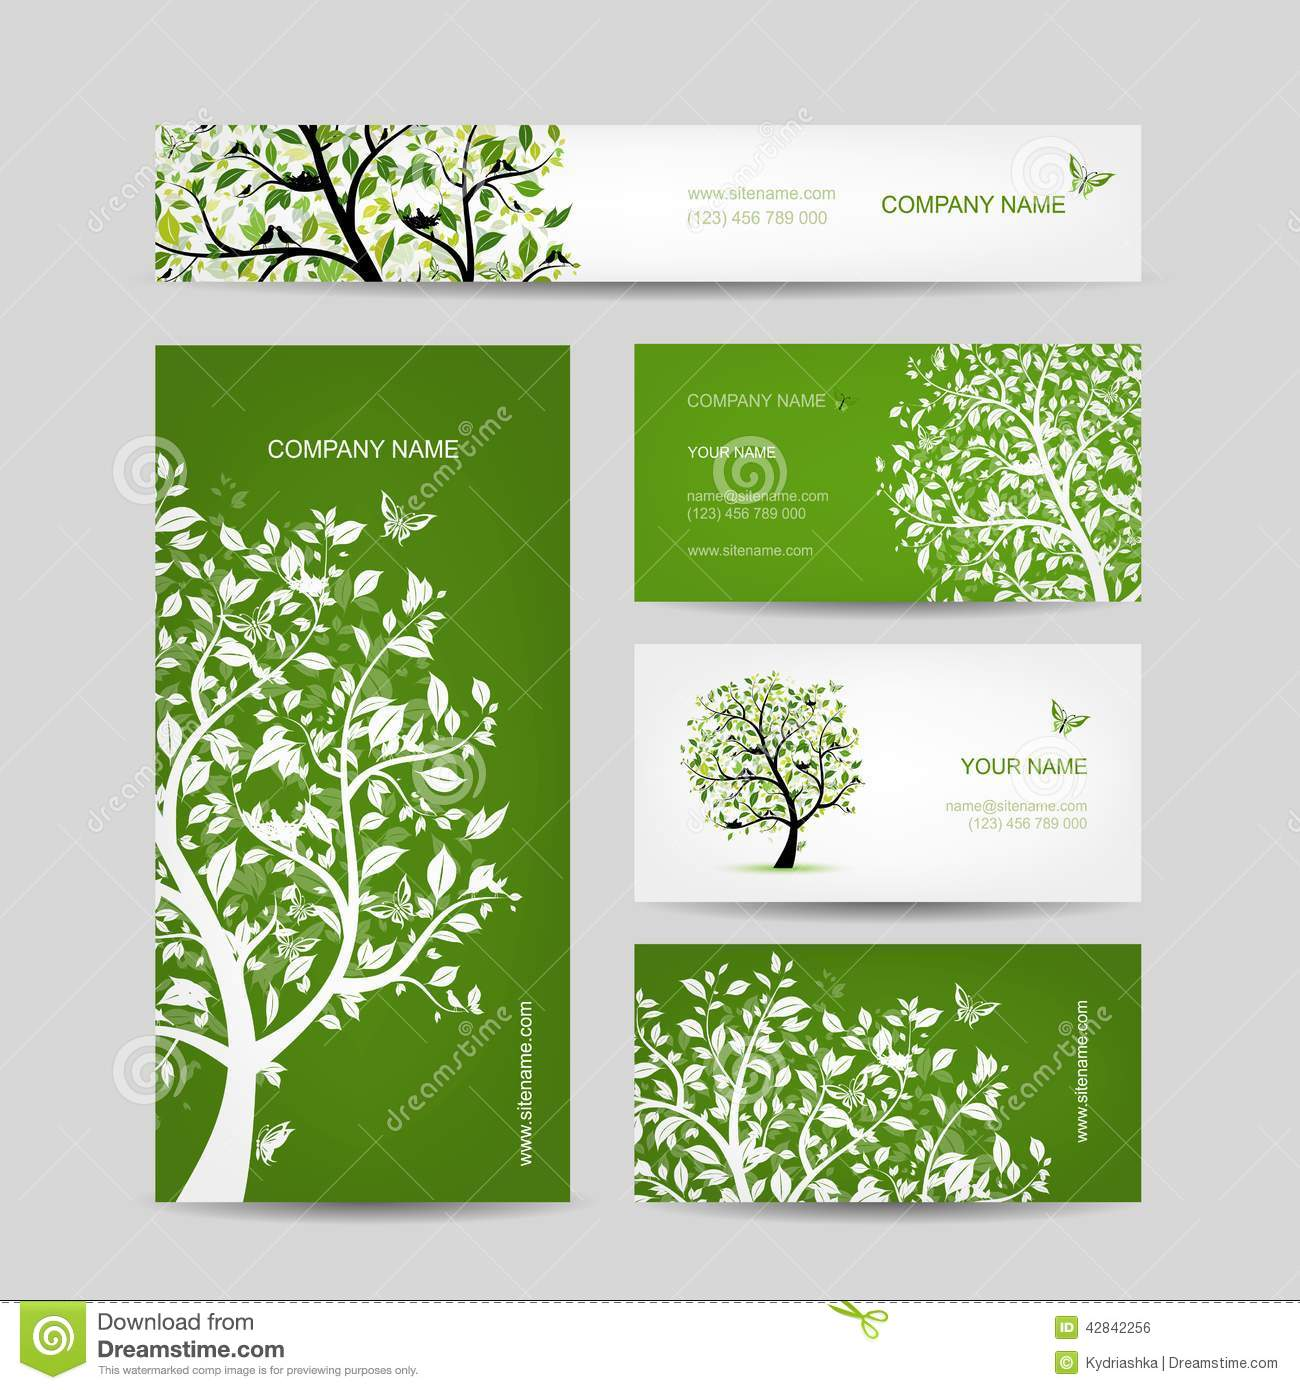 business cards design spring tree with birds - Garden Design Business Cards